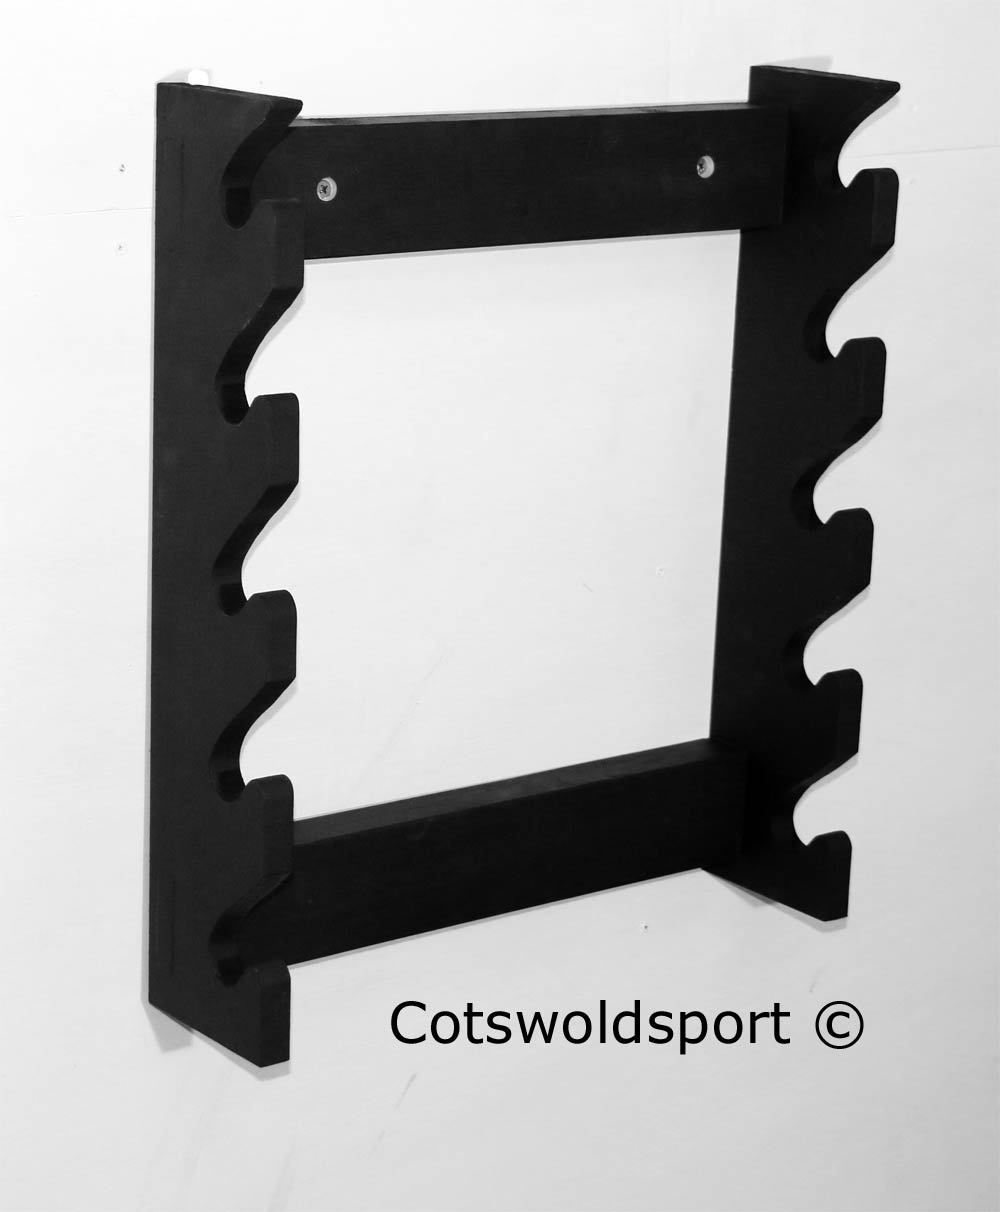 http://www.cotswoldsport.co.uk/Main-Shop/pics/e/p/Swordrack5_1.jpg